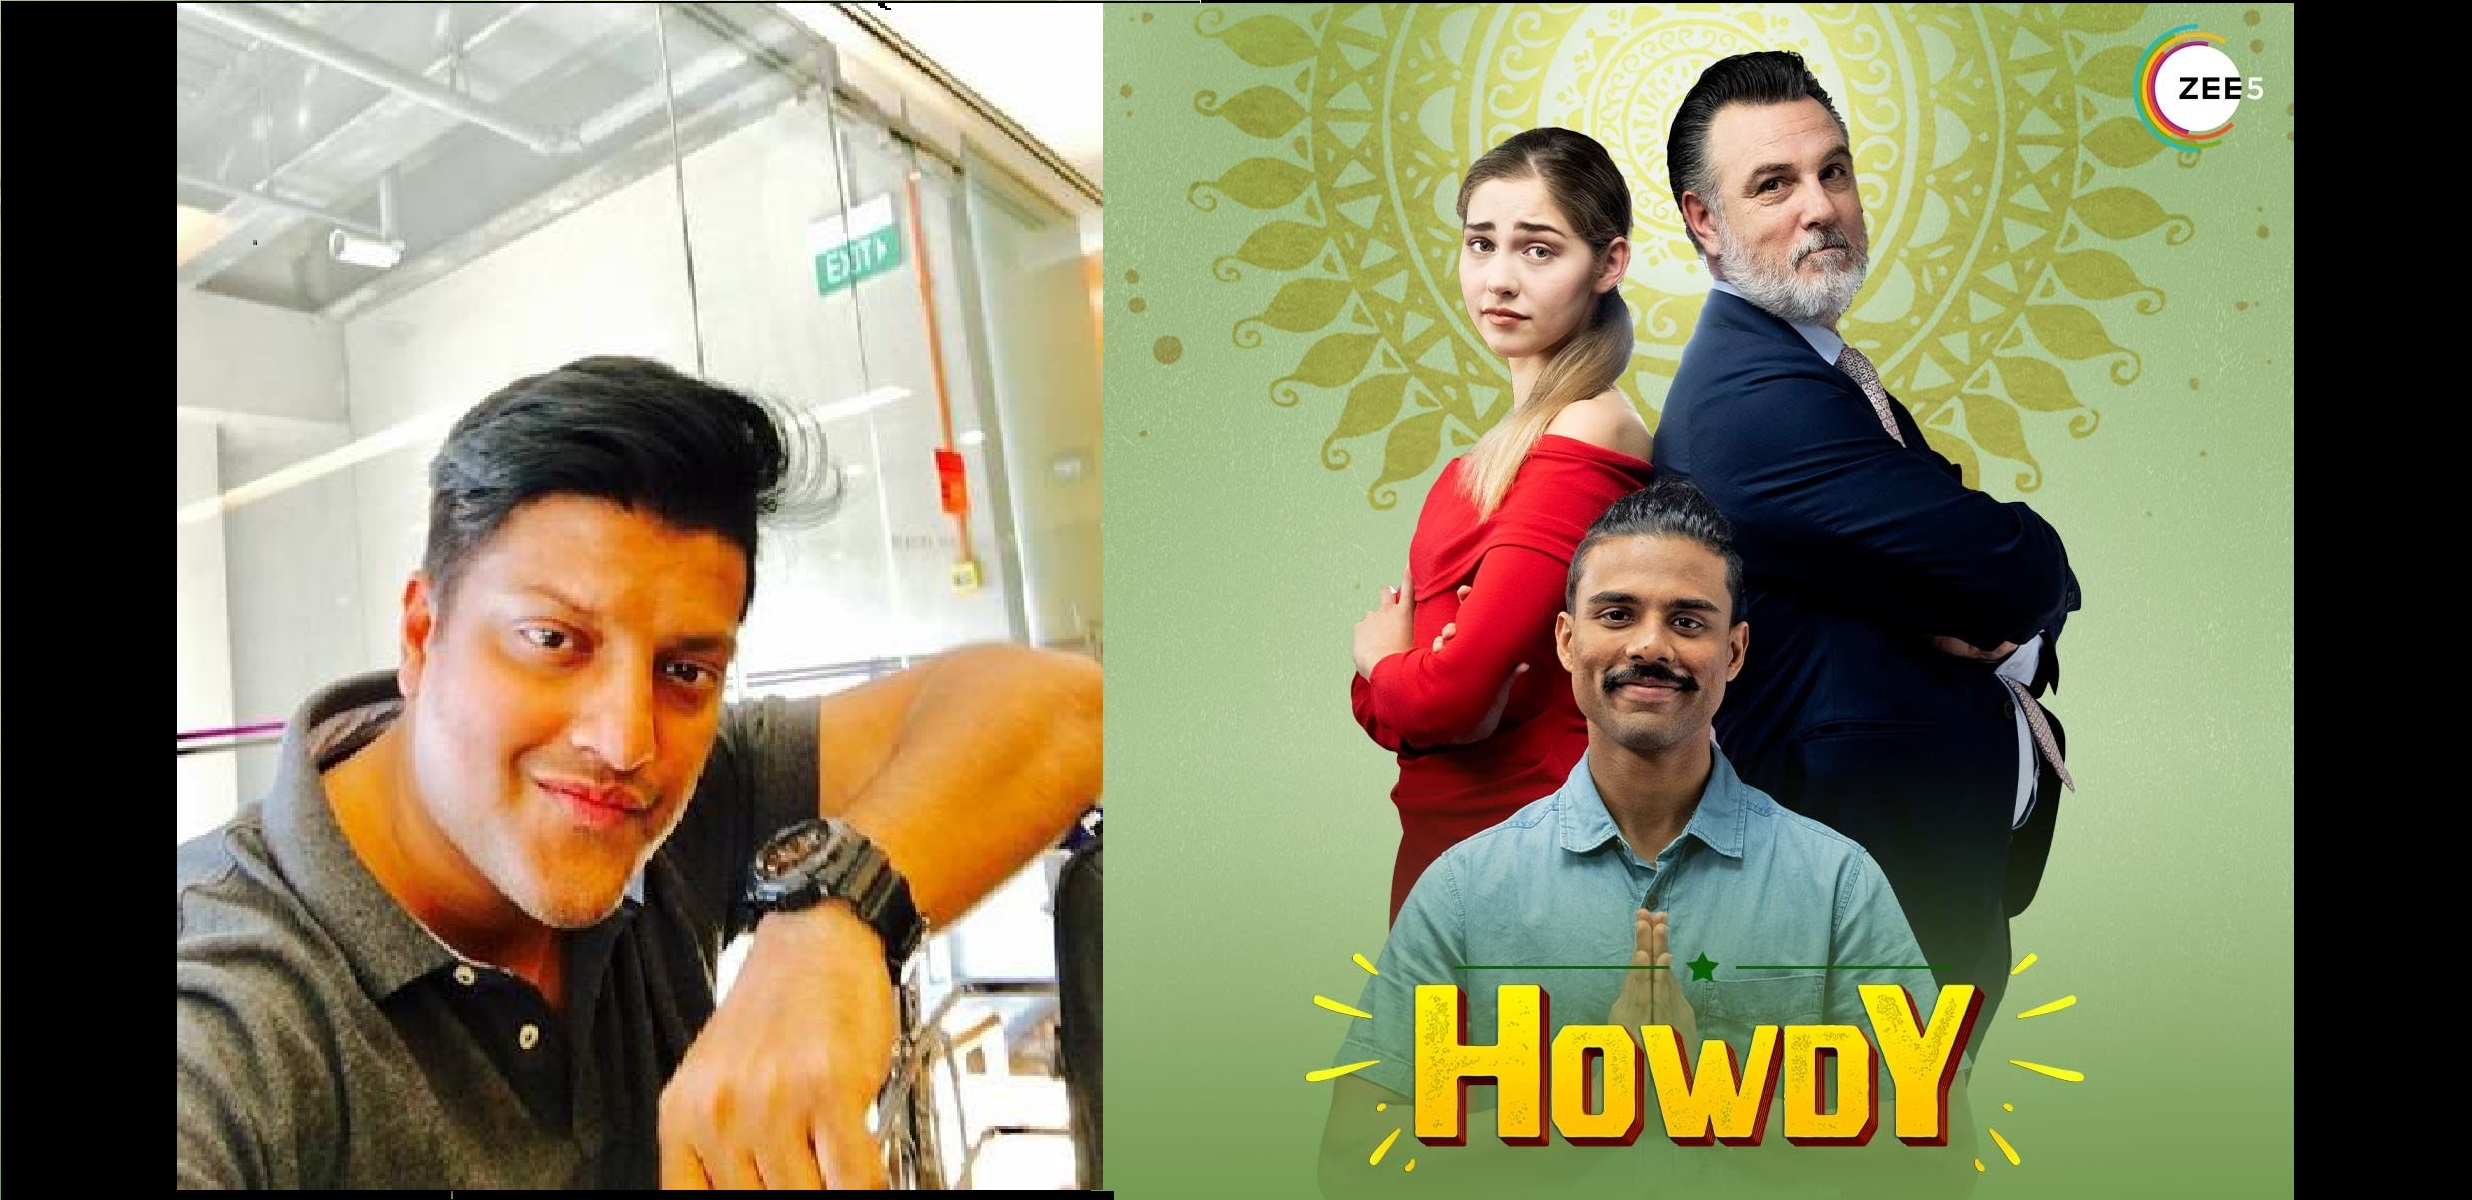 Australian-Malayalee director Jay Janardhan (extreme left), from Thiruvananthapuram now based in Brisbane, Australia is the director of Howdy, a comedy that showcases diversity. Photo Courtesy: ZEE5